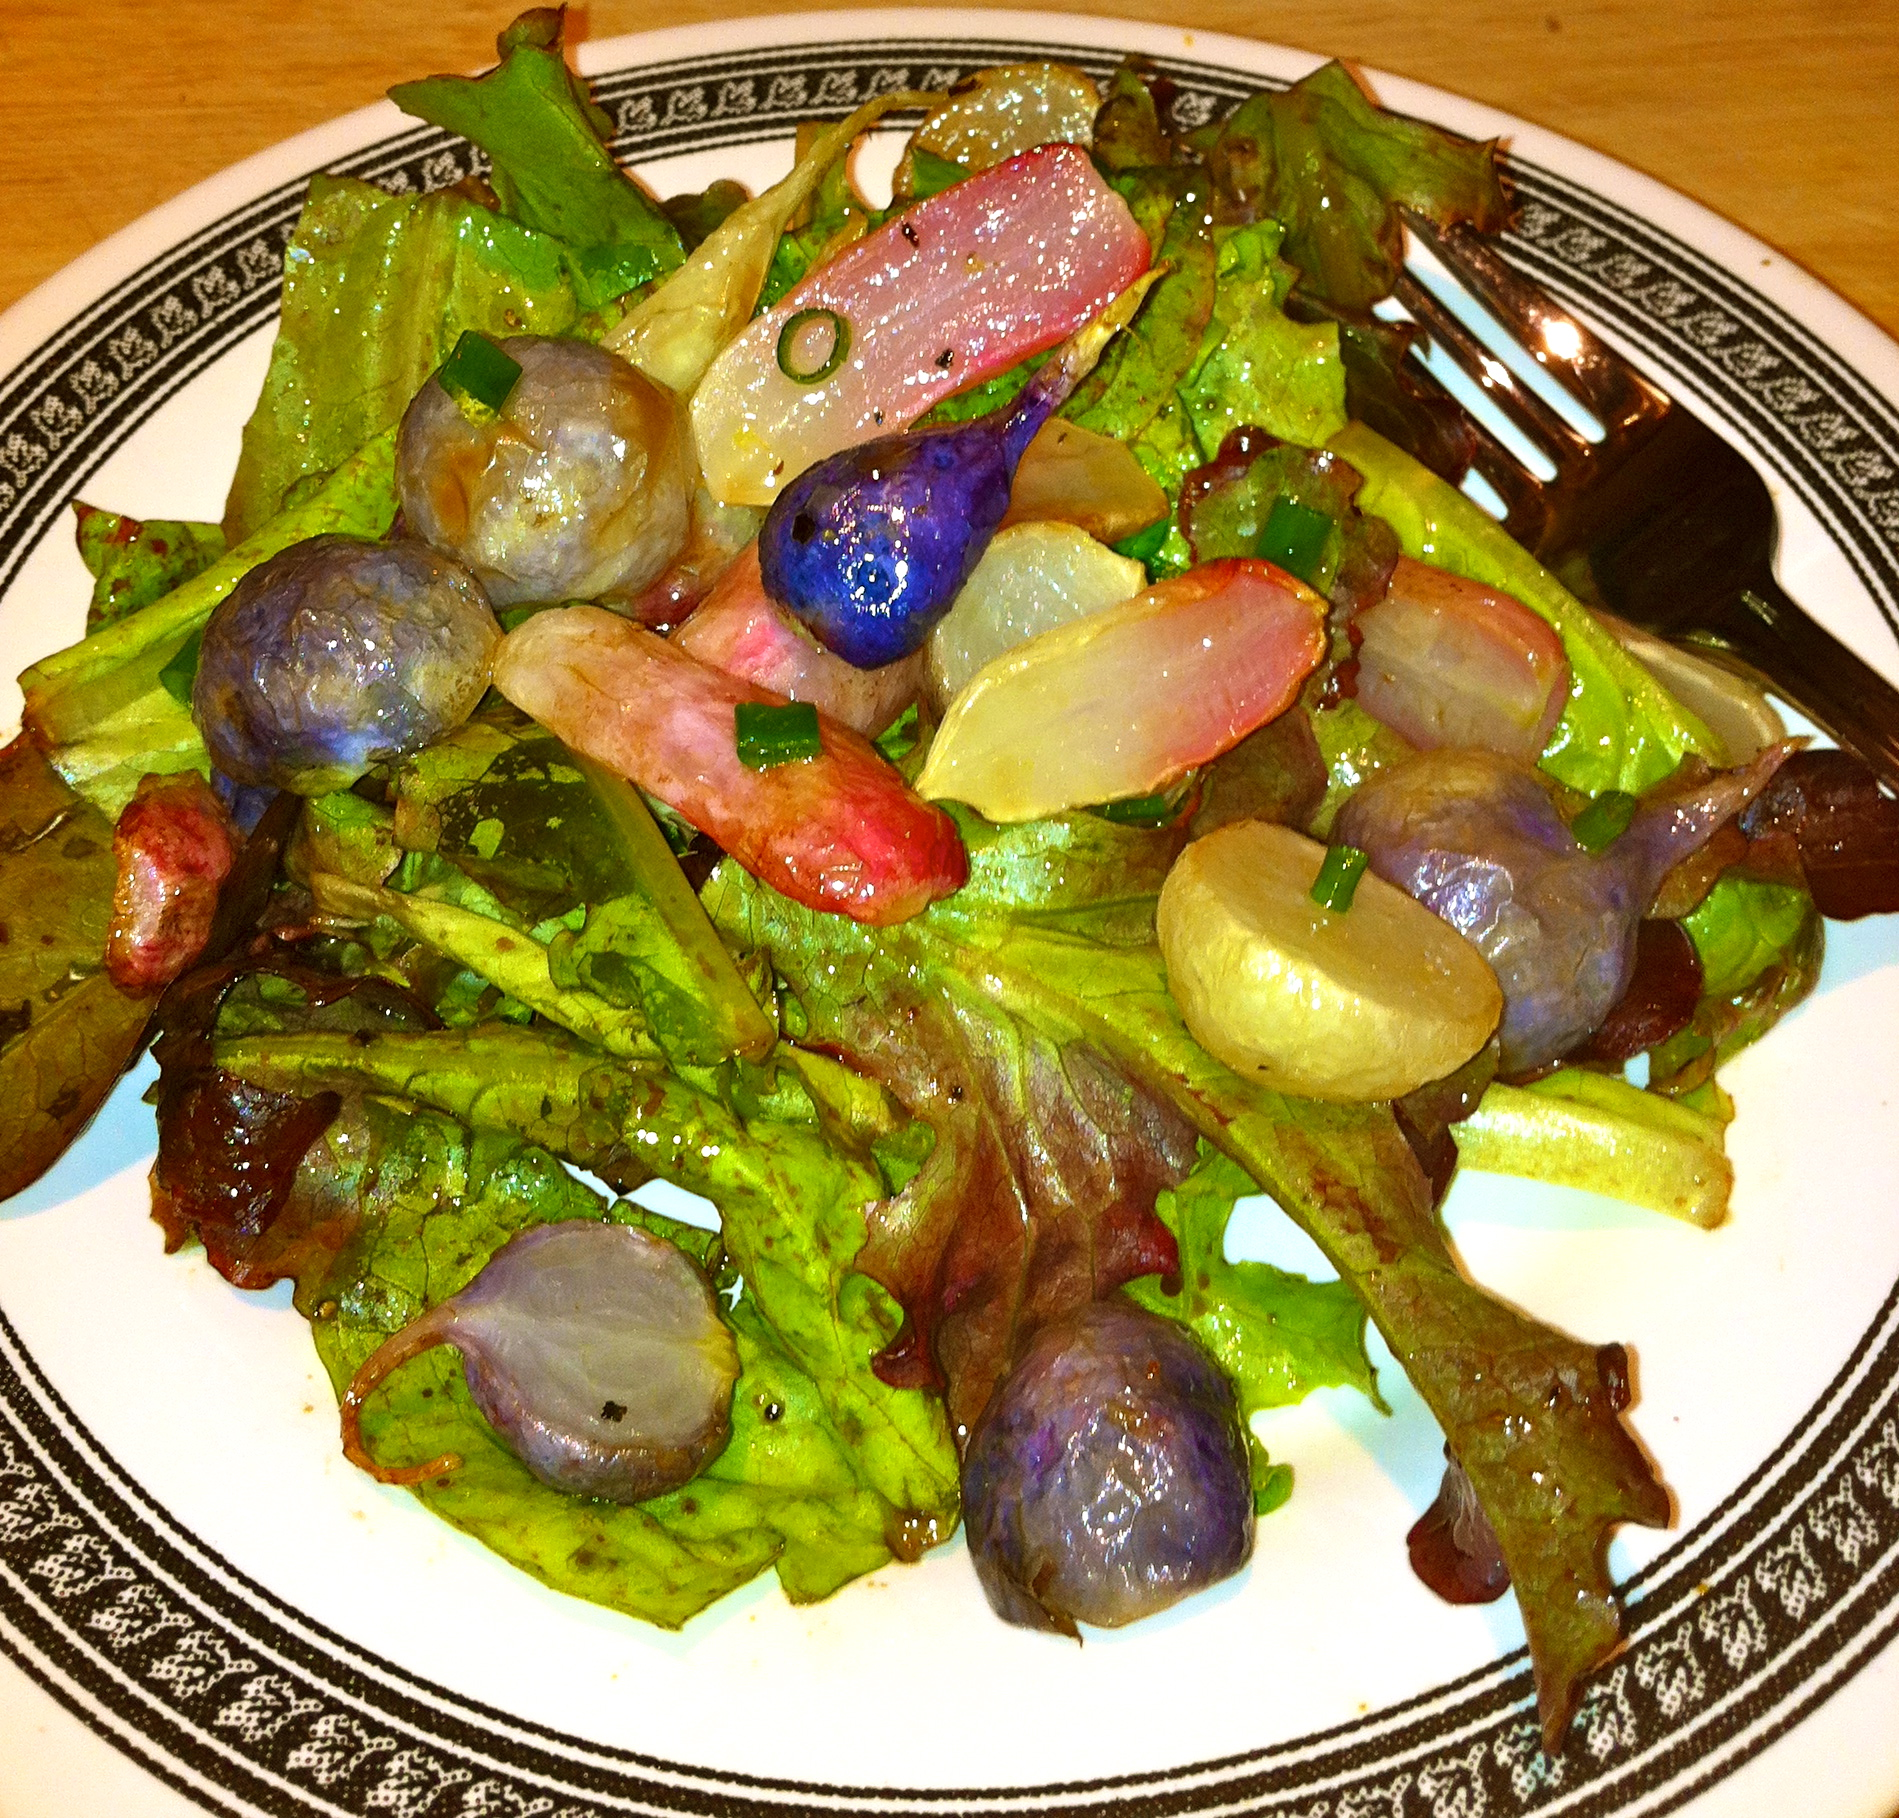 Roasted Radish Salad